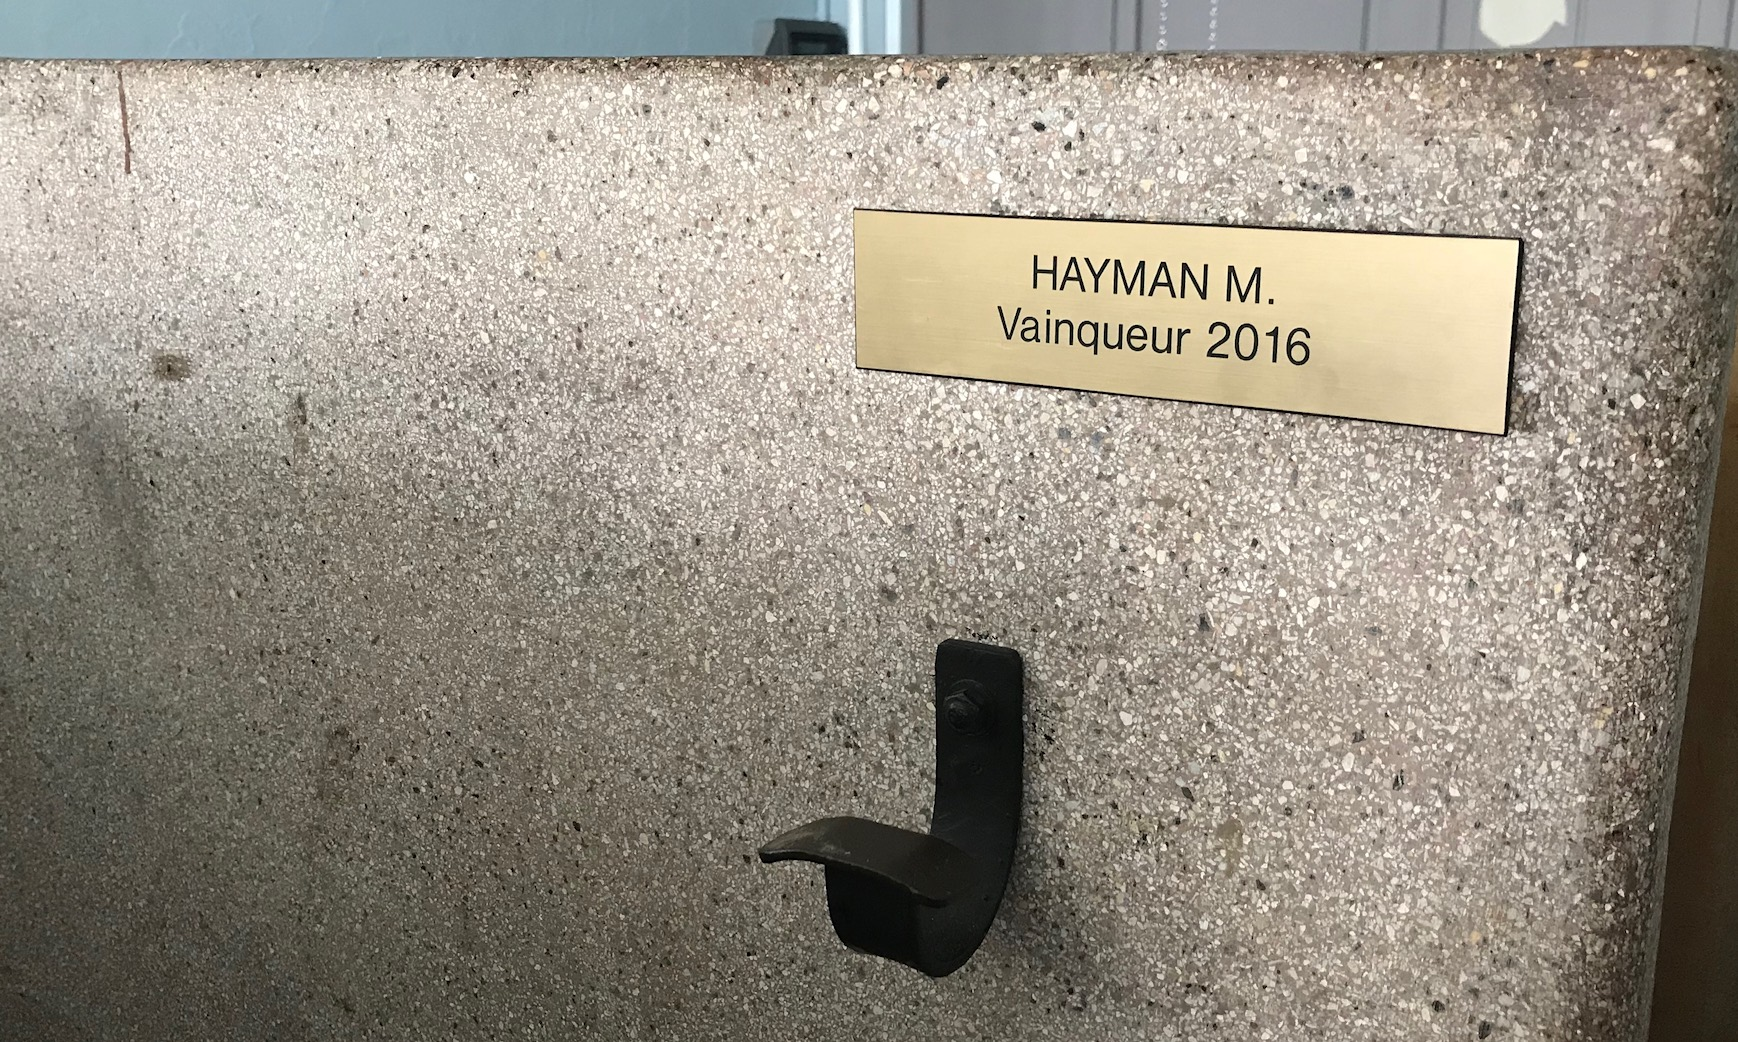 BiciSport in Flanders 18 @ 29 Mar - the famous Roubaix showers where every winner earns a special cubicle bearing their name